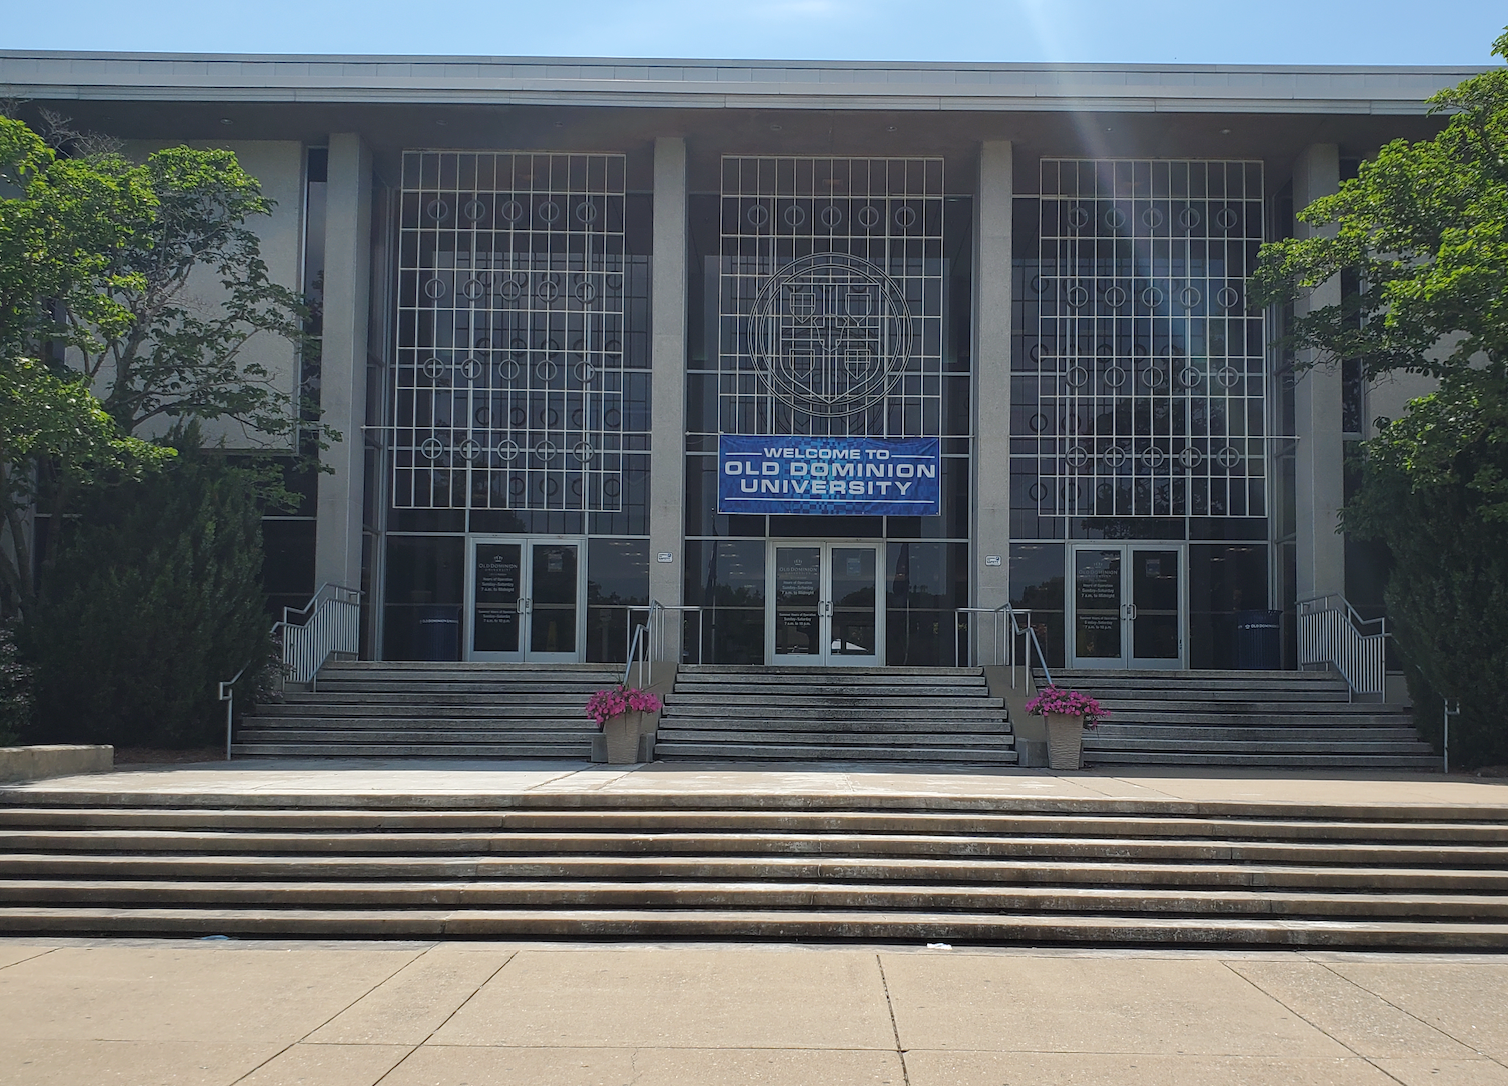 Old Dominion University Master of Public Administration